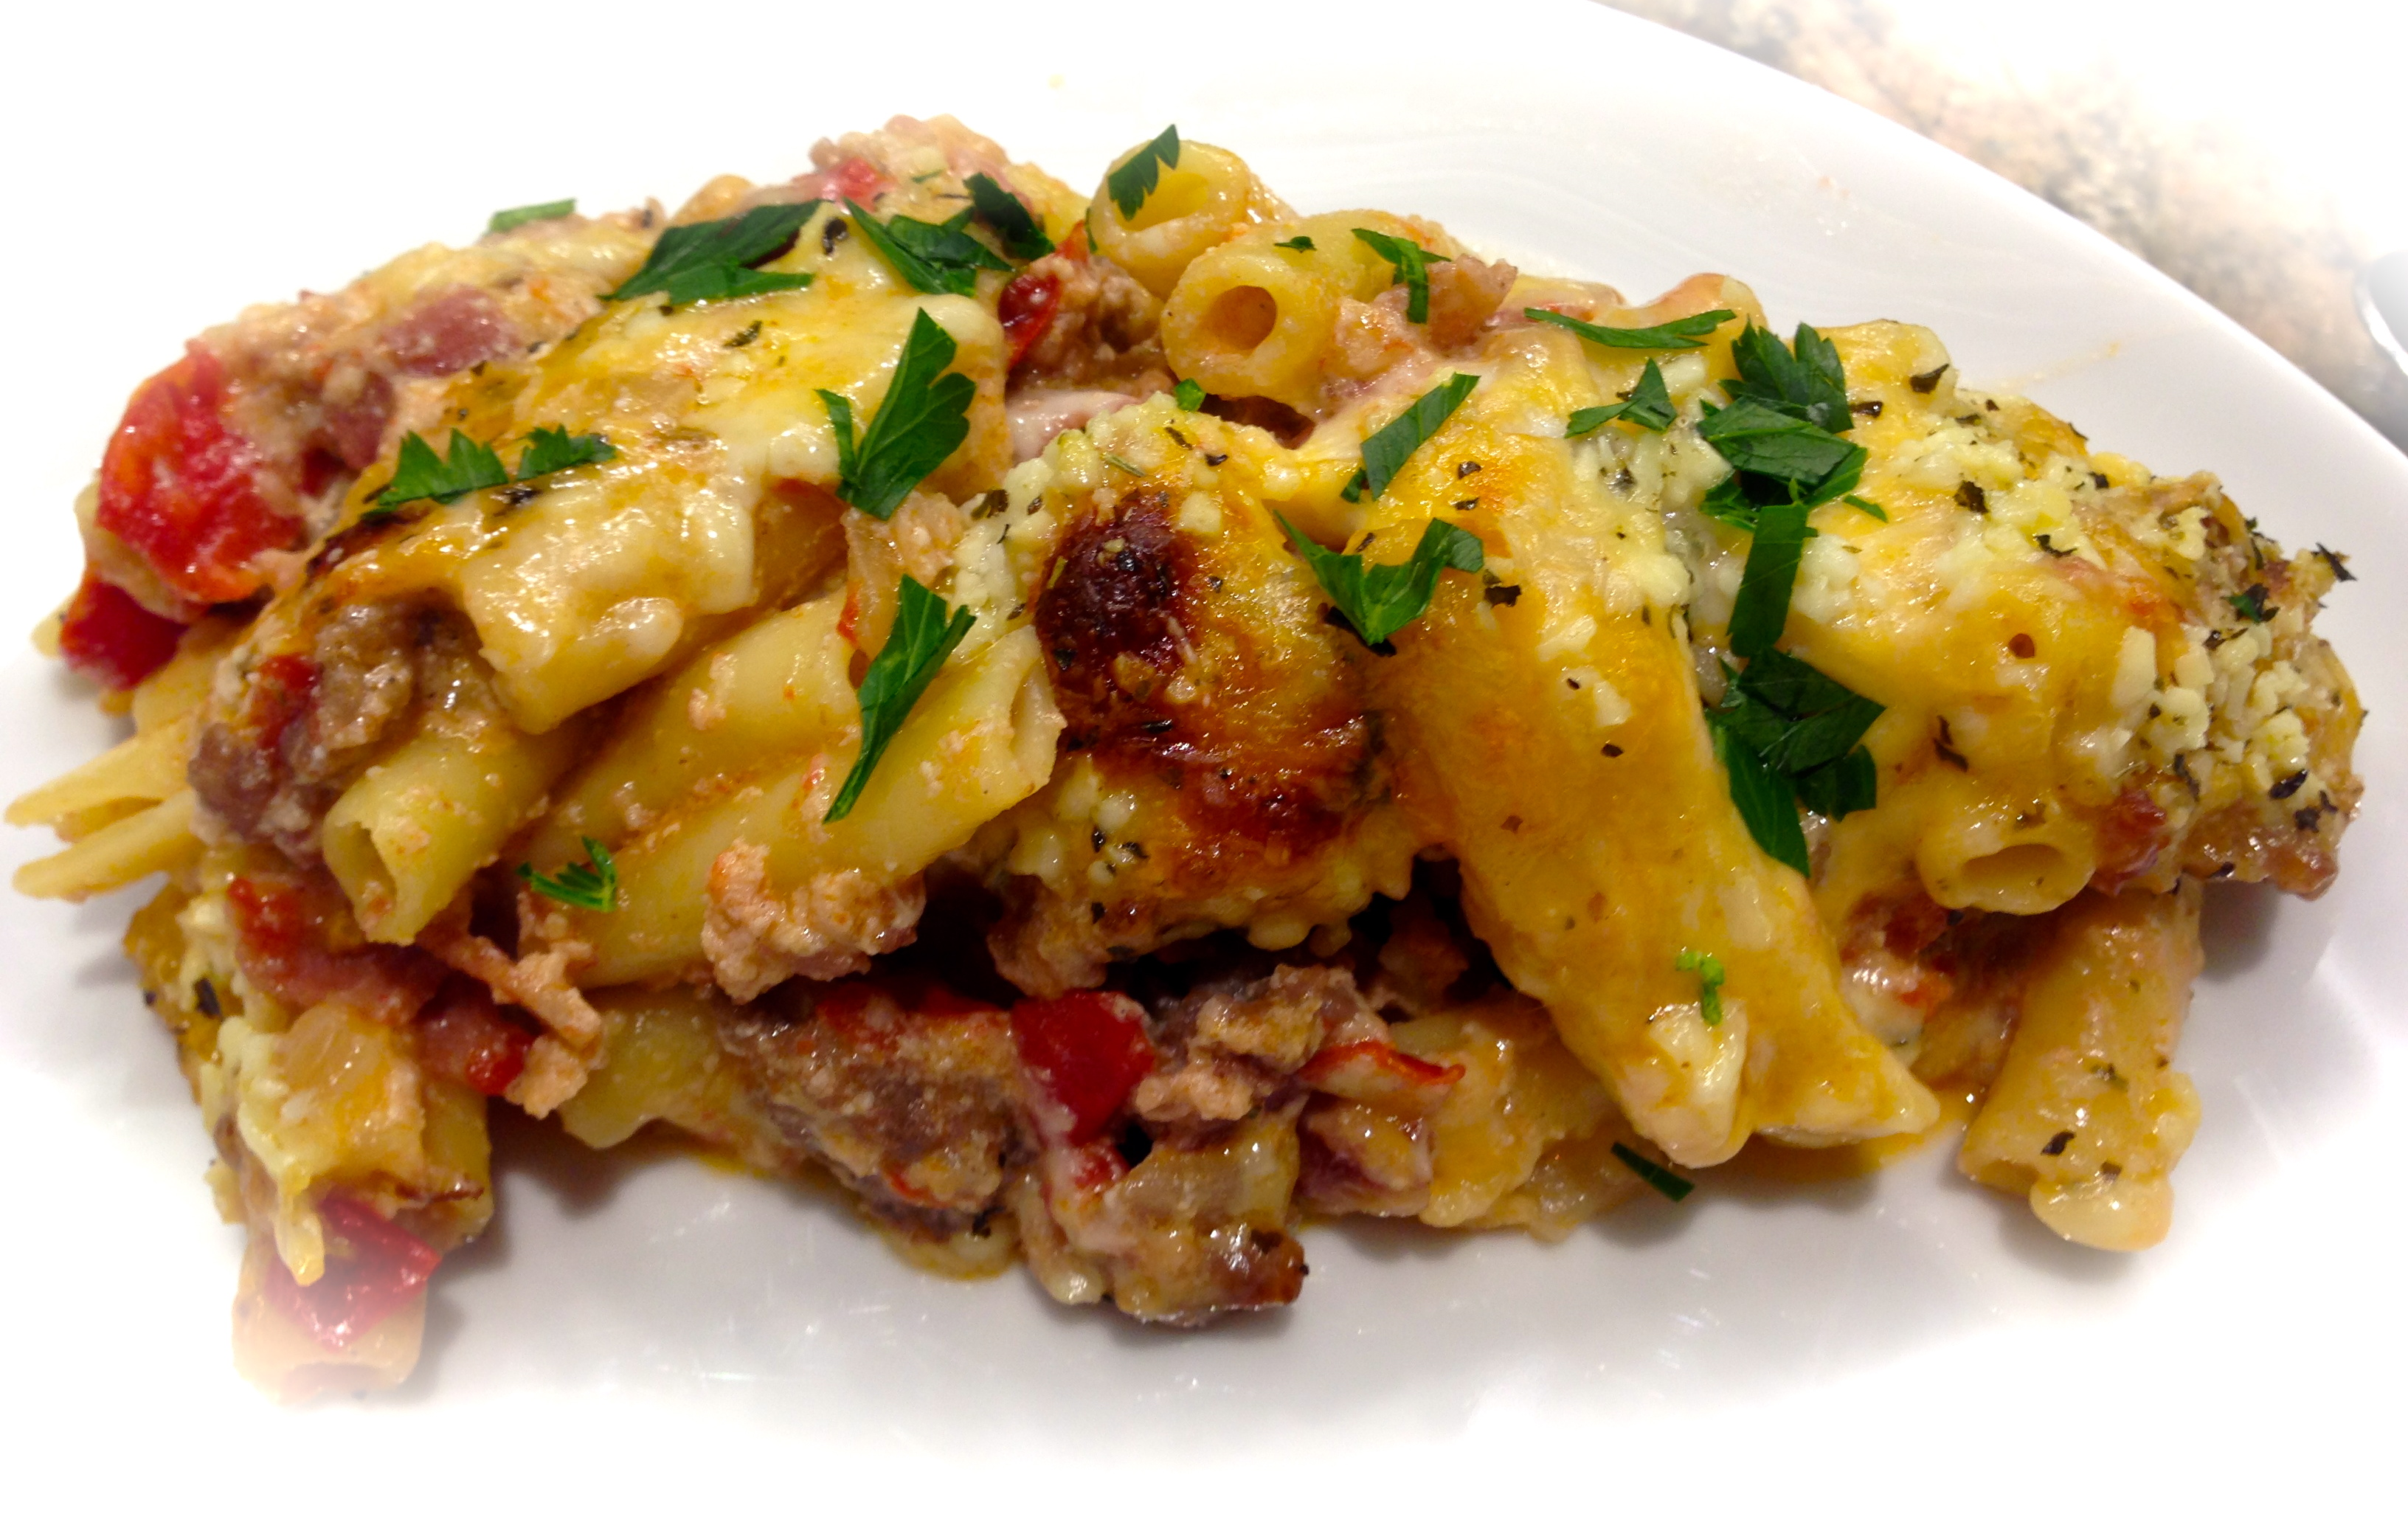 Baked Ziti With Sausage and Pancetta